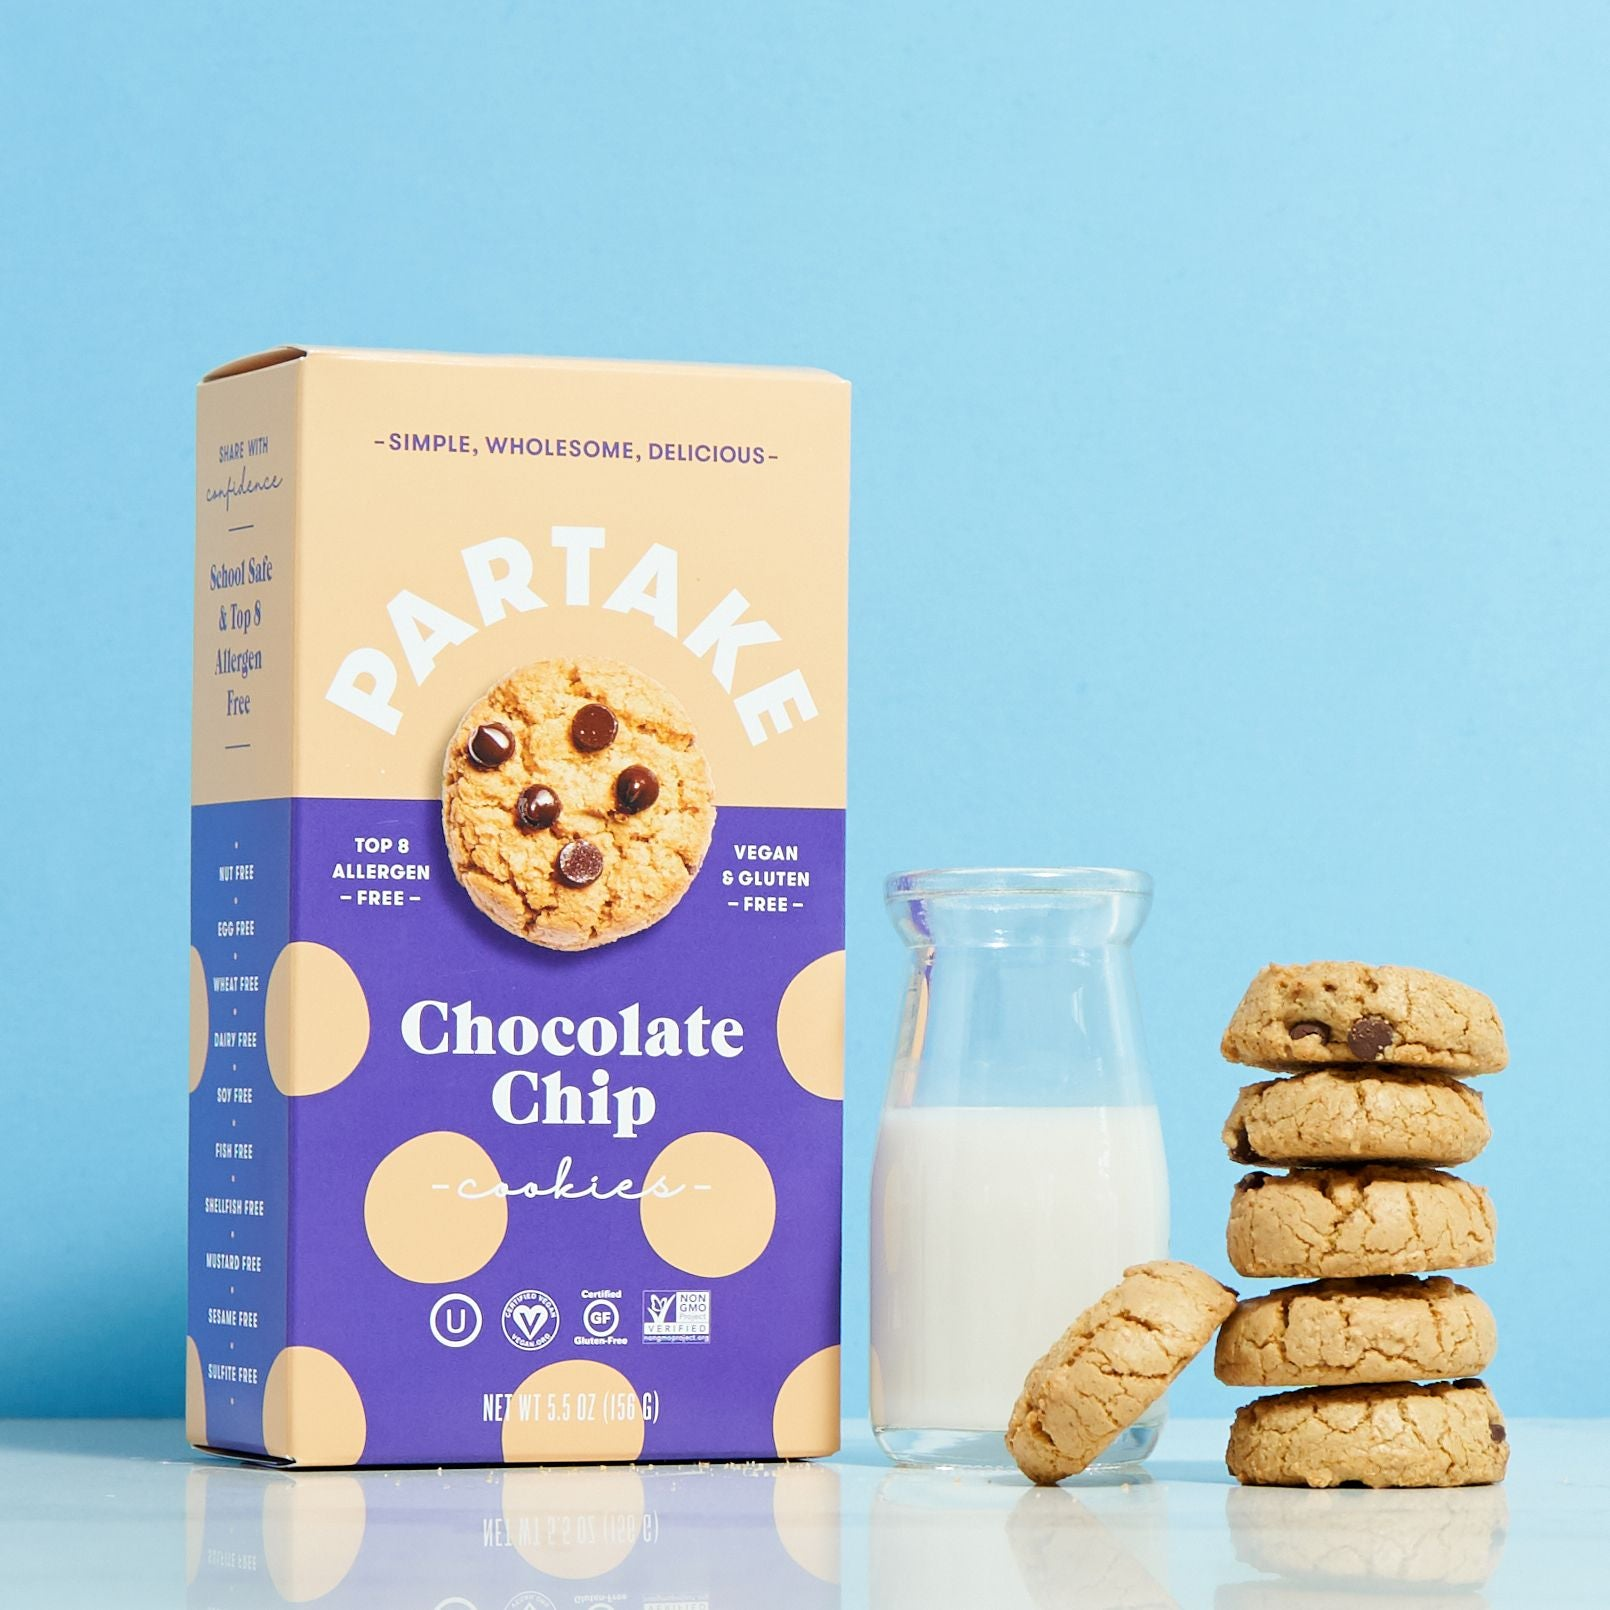 A box of Chocolate Chip cookies by Partake Foods along with a glass of milk and a stack of cookies displayed.